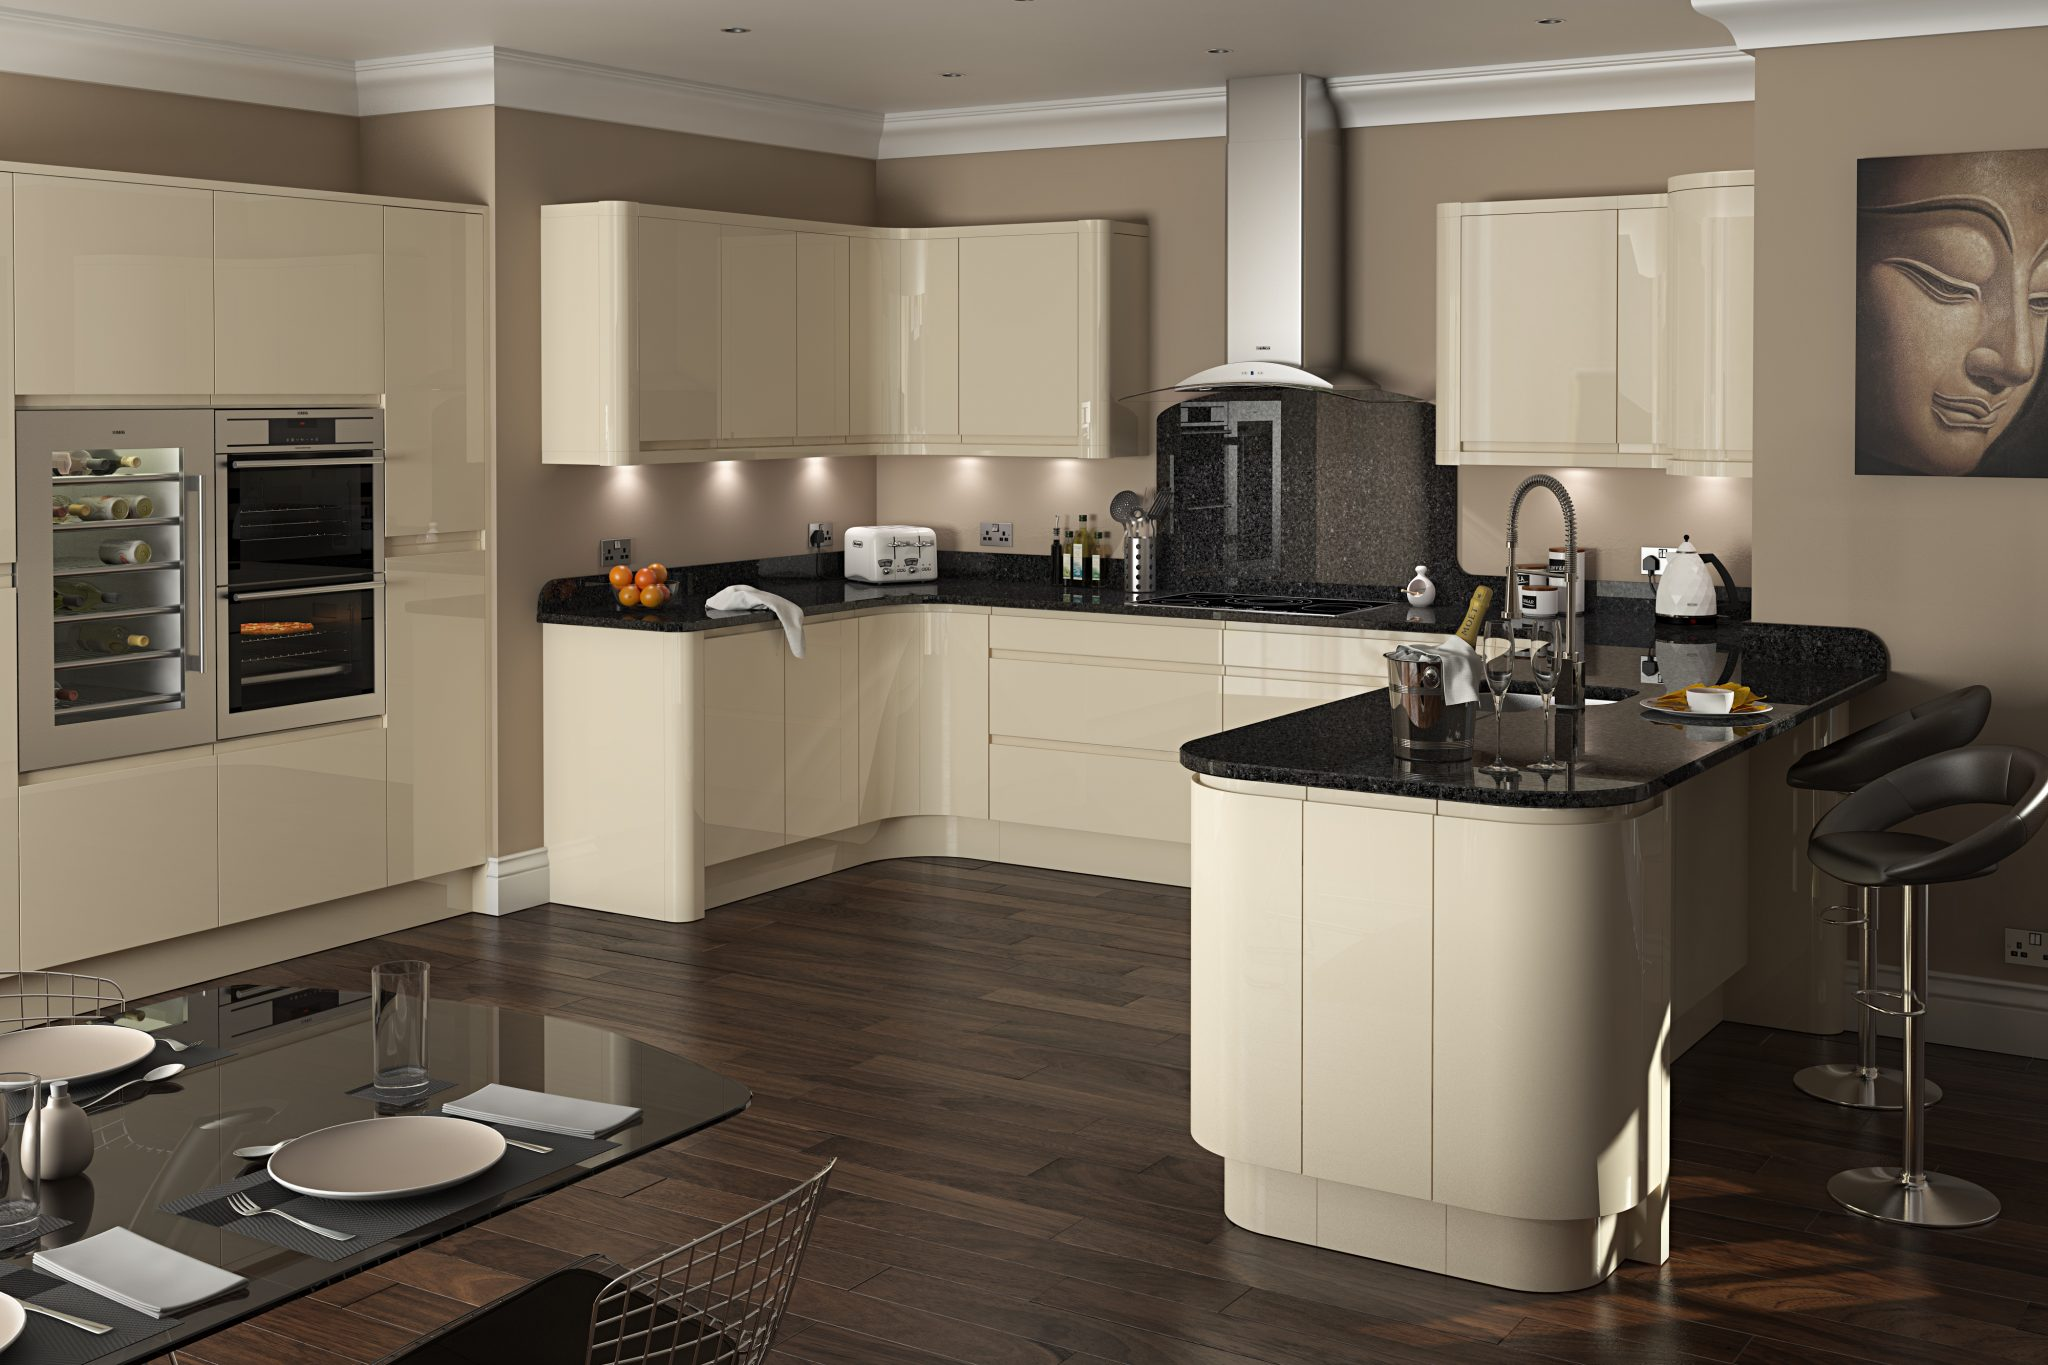 Kitchen design kitchens wirral bespoke luxury designs for Kitchen design pictures